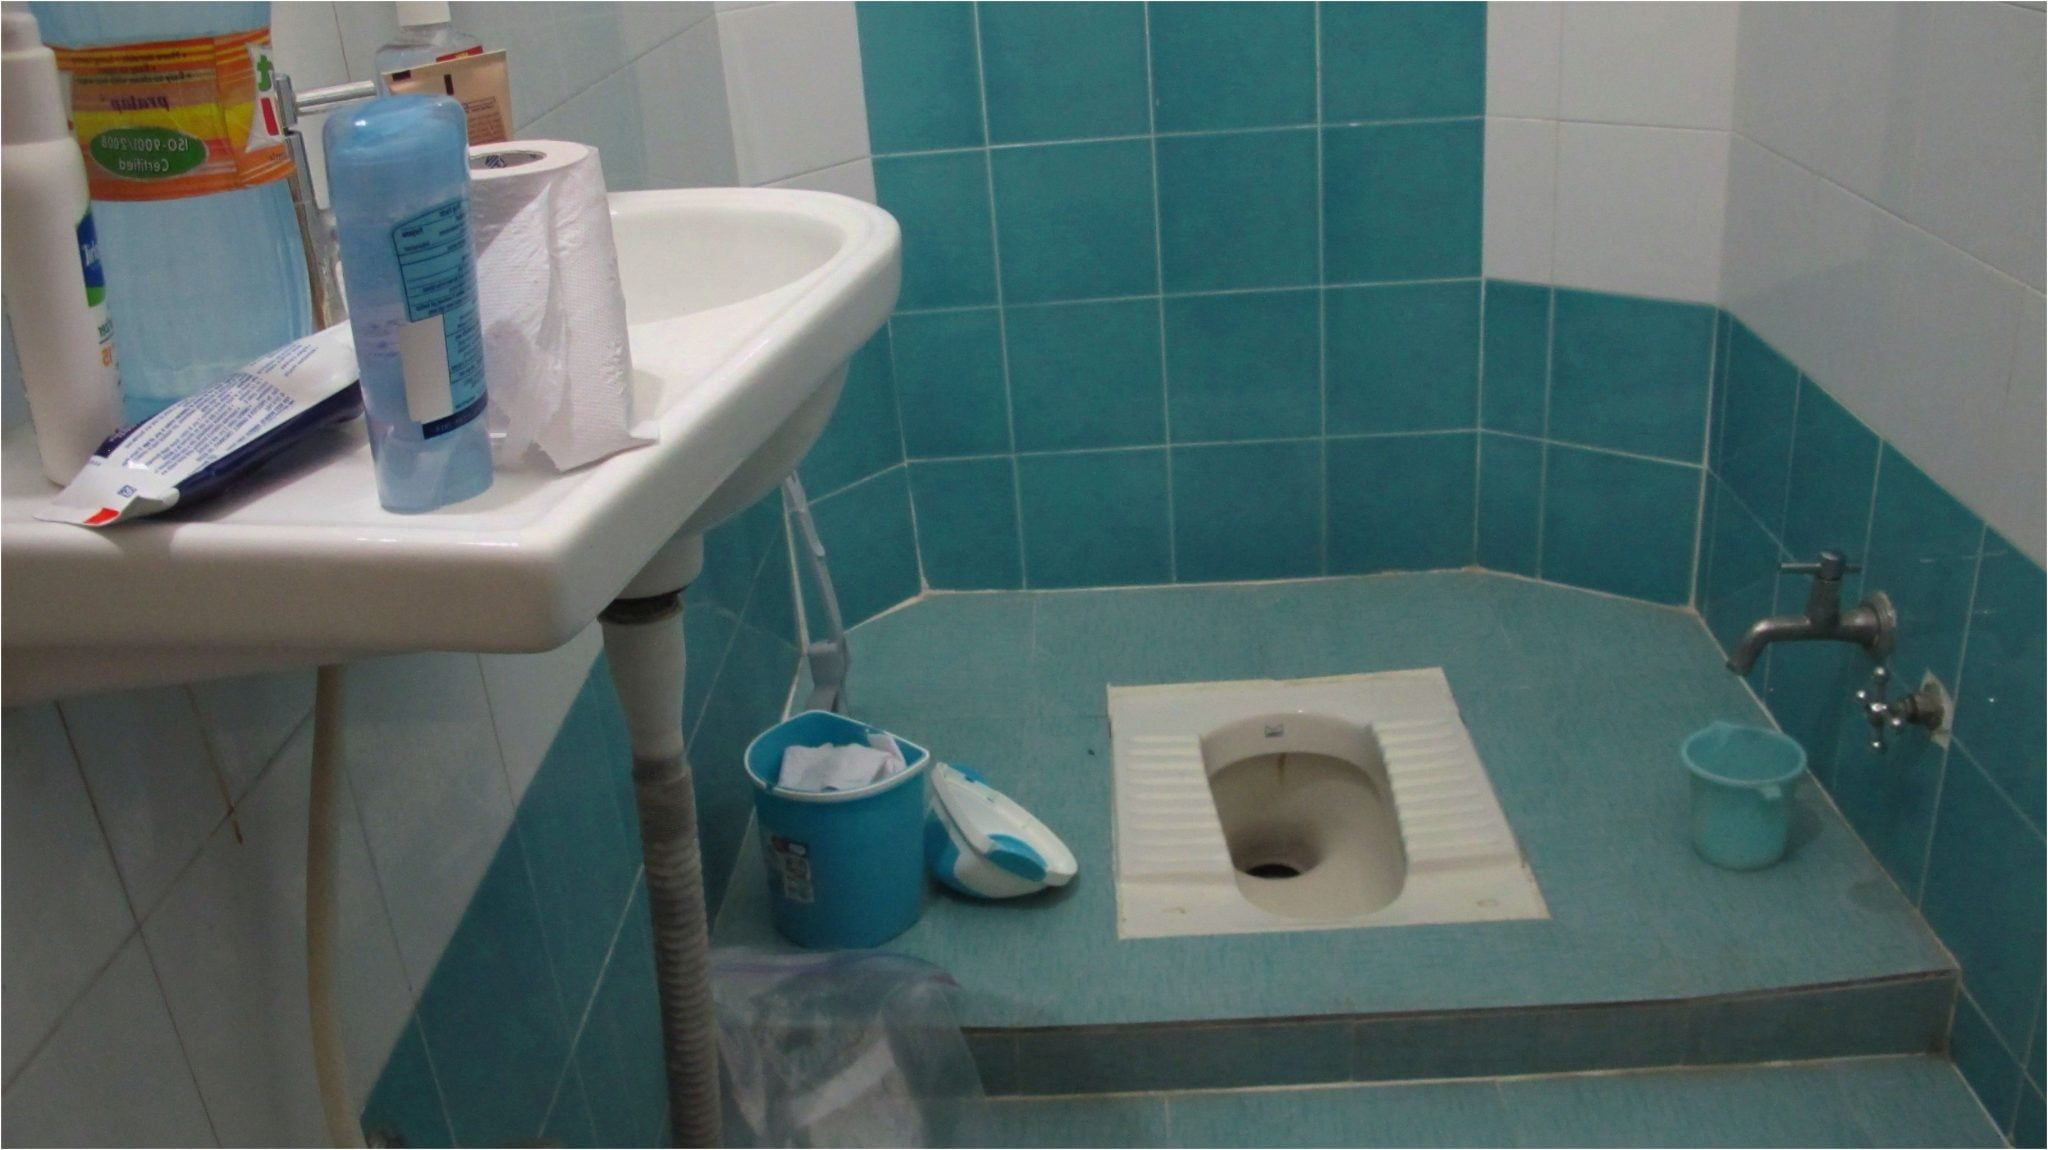 Indian Toilet Design Layout Toilet And Bathroom Design Toilet Design Simple Bathroom Designs Bathroom decorating ideas india